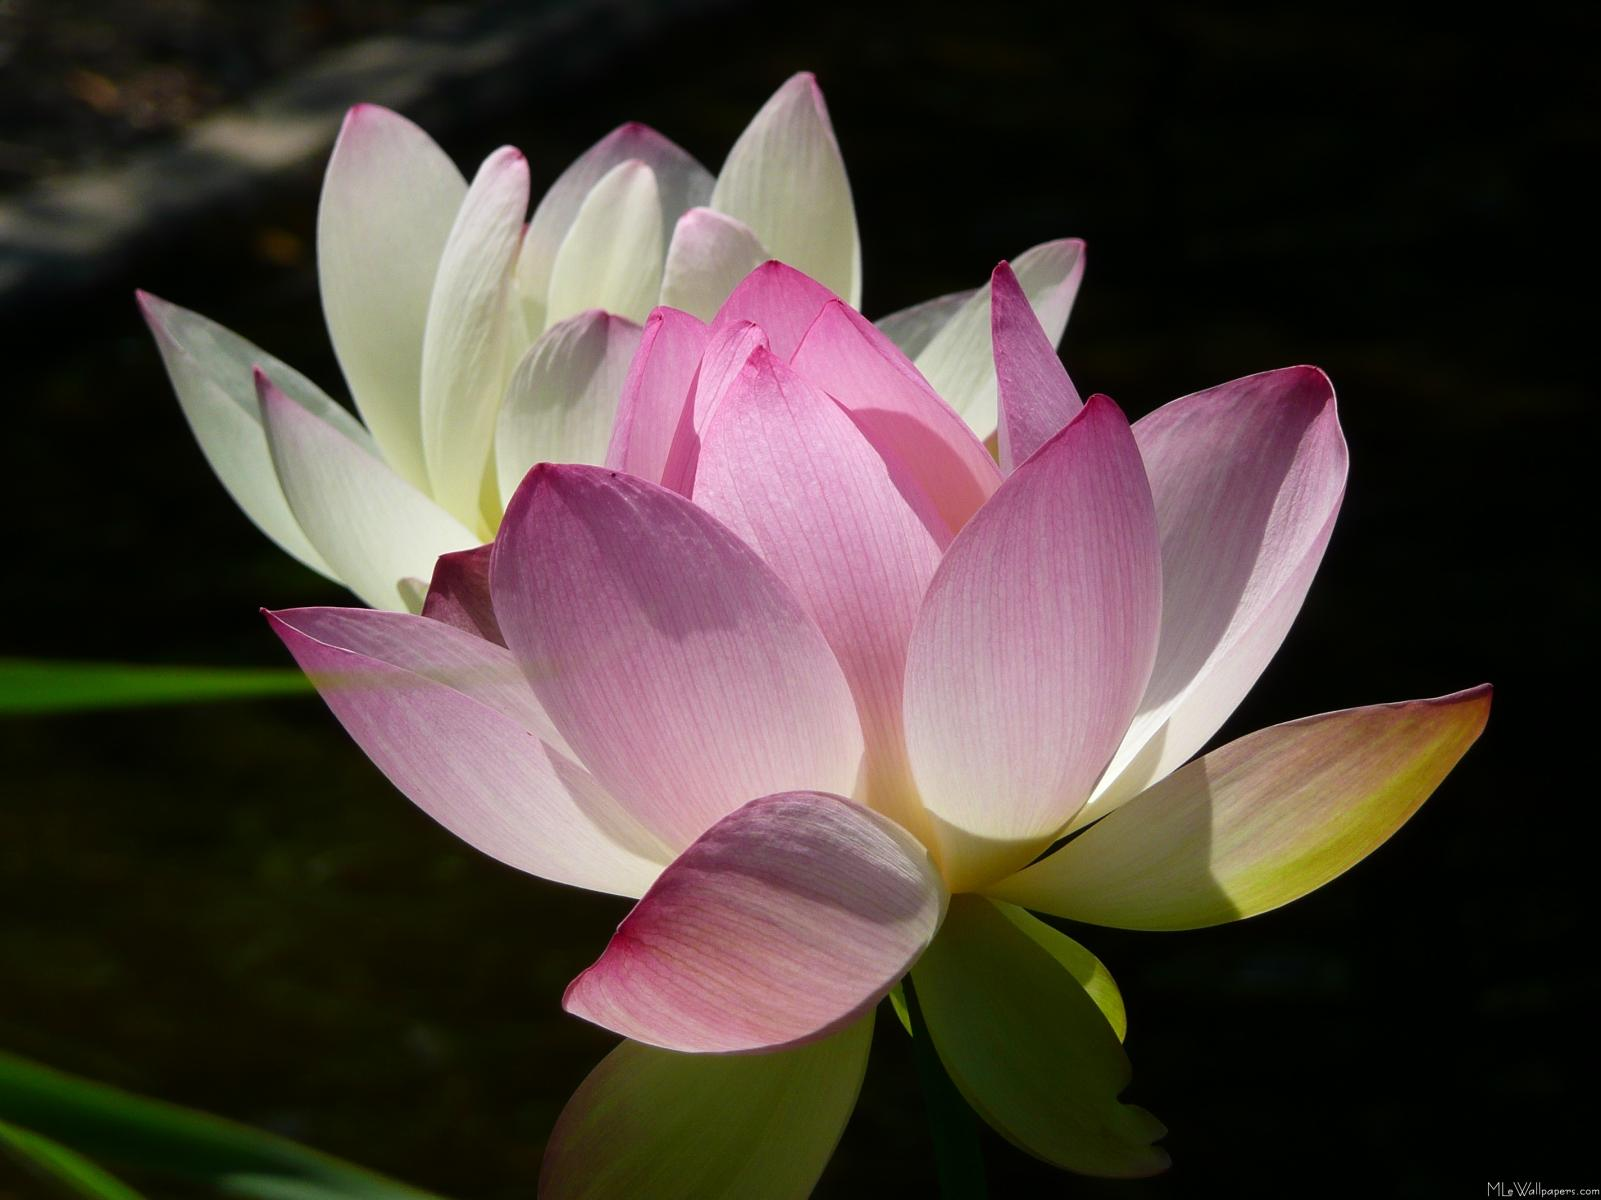 Mlewallpapers Pair Of Lotus Flowers Ii